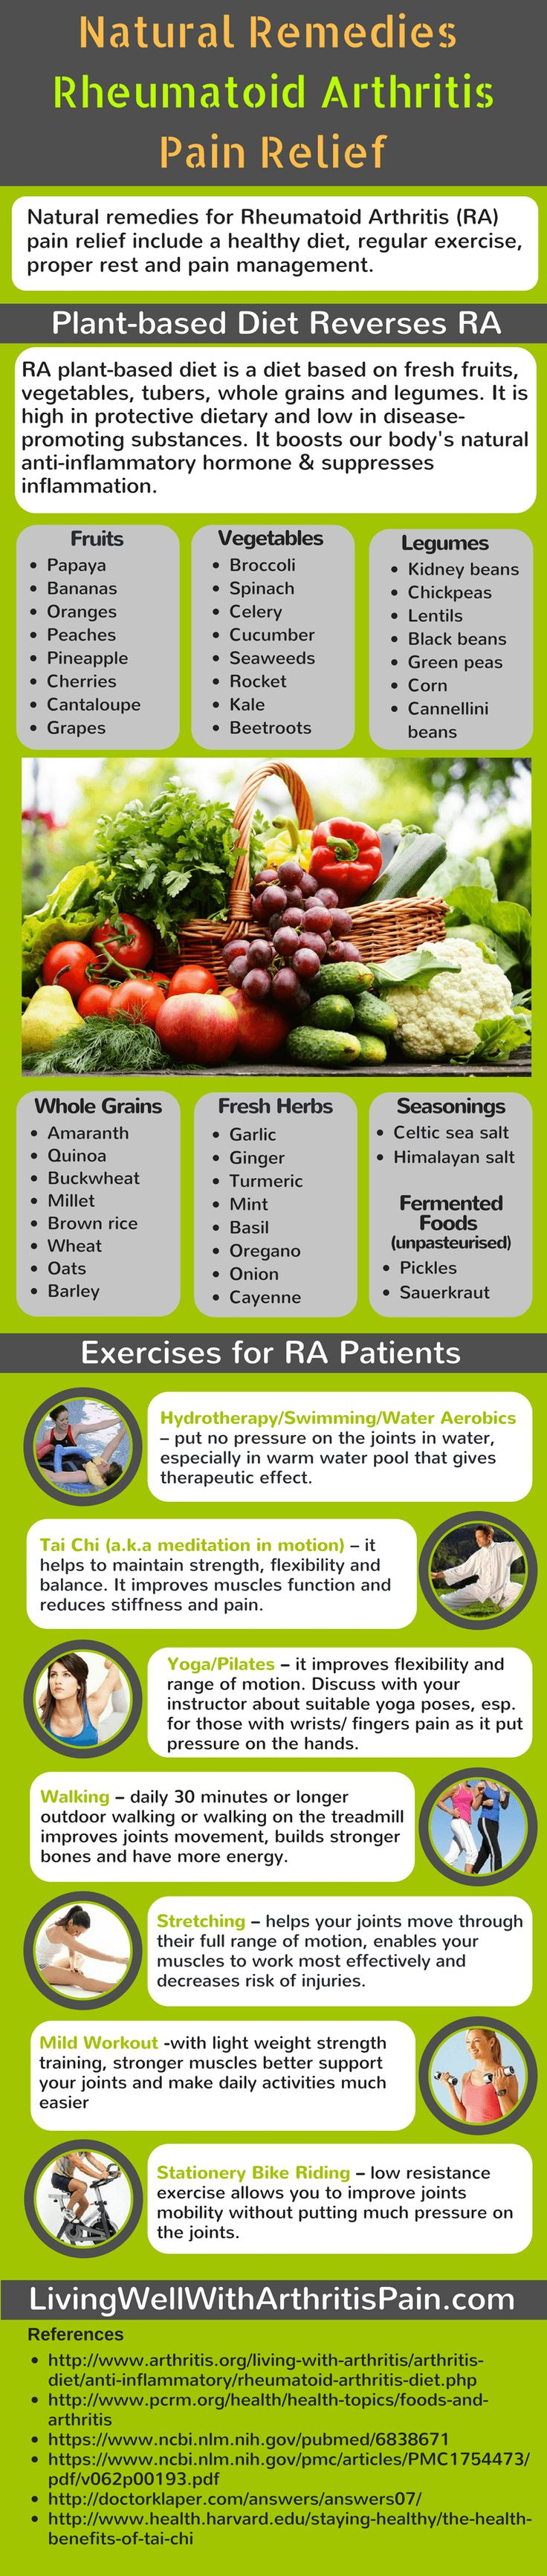 natural-remedies-rheumatoid-arthritis-pain-relief